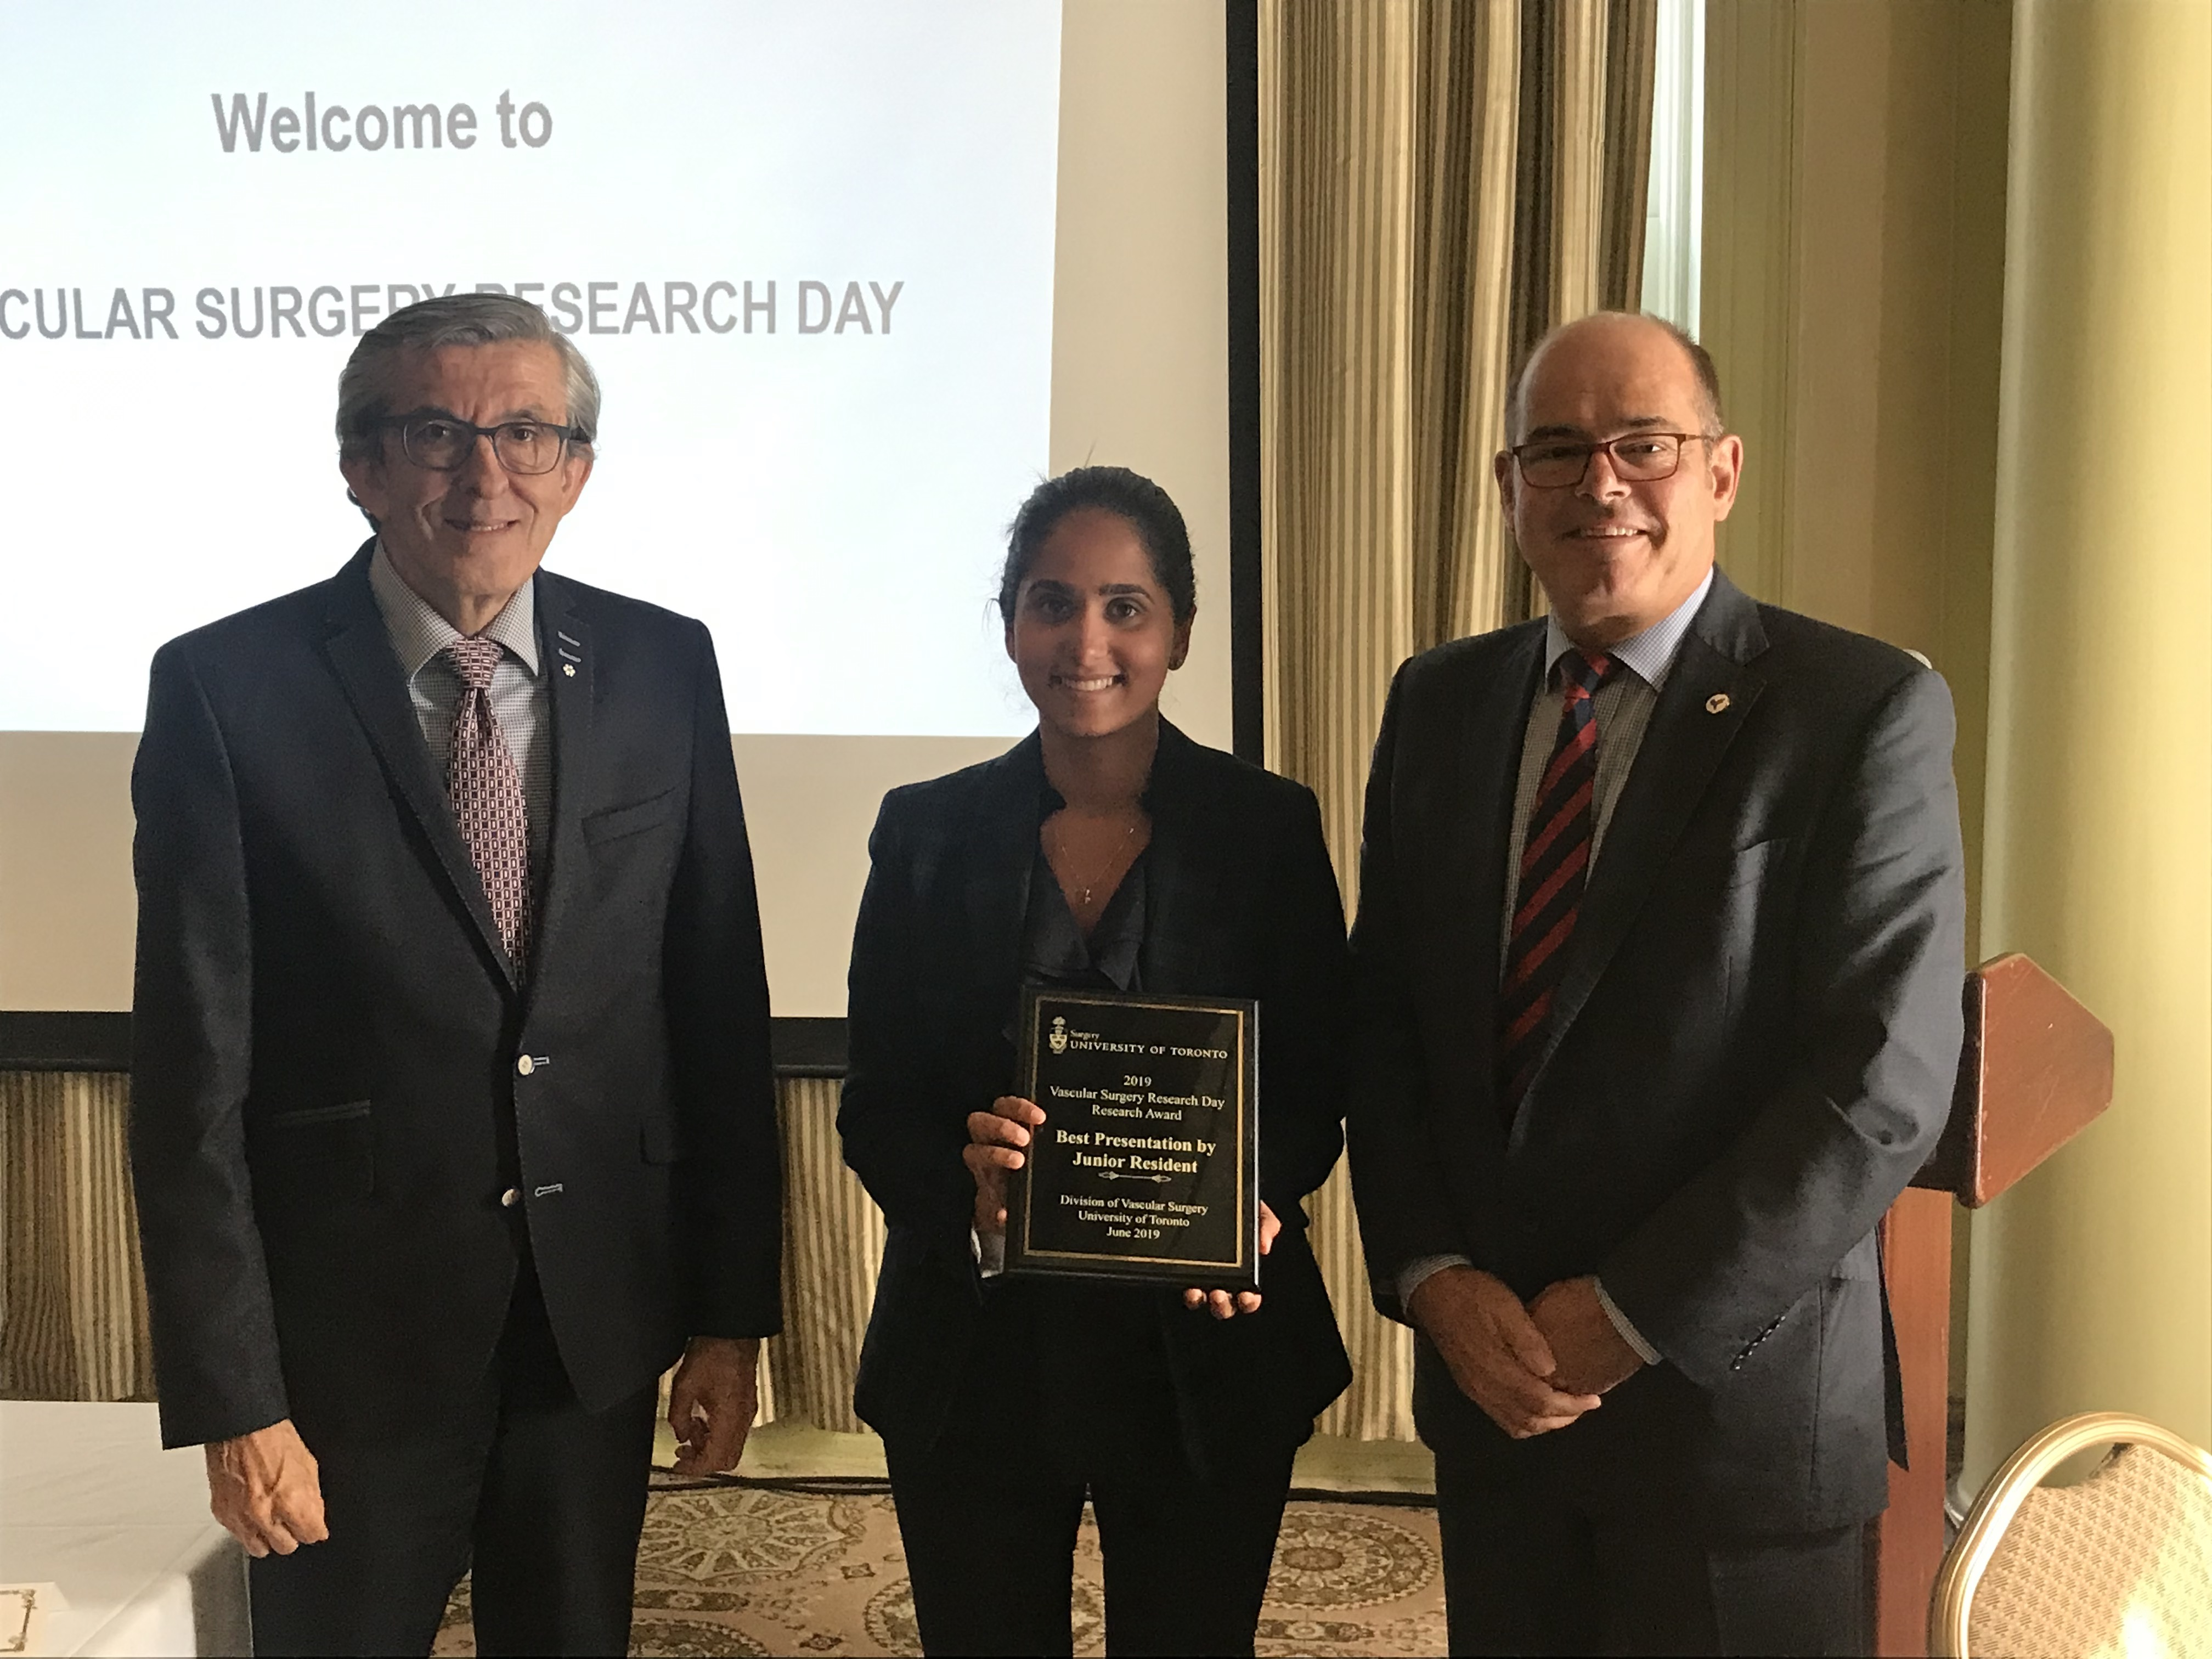 2019 research day photo 3